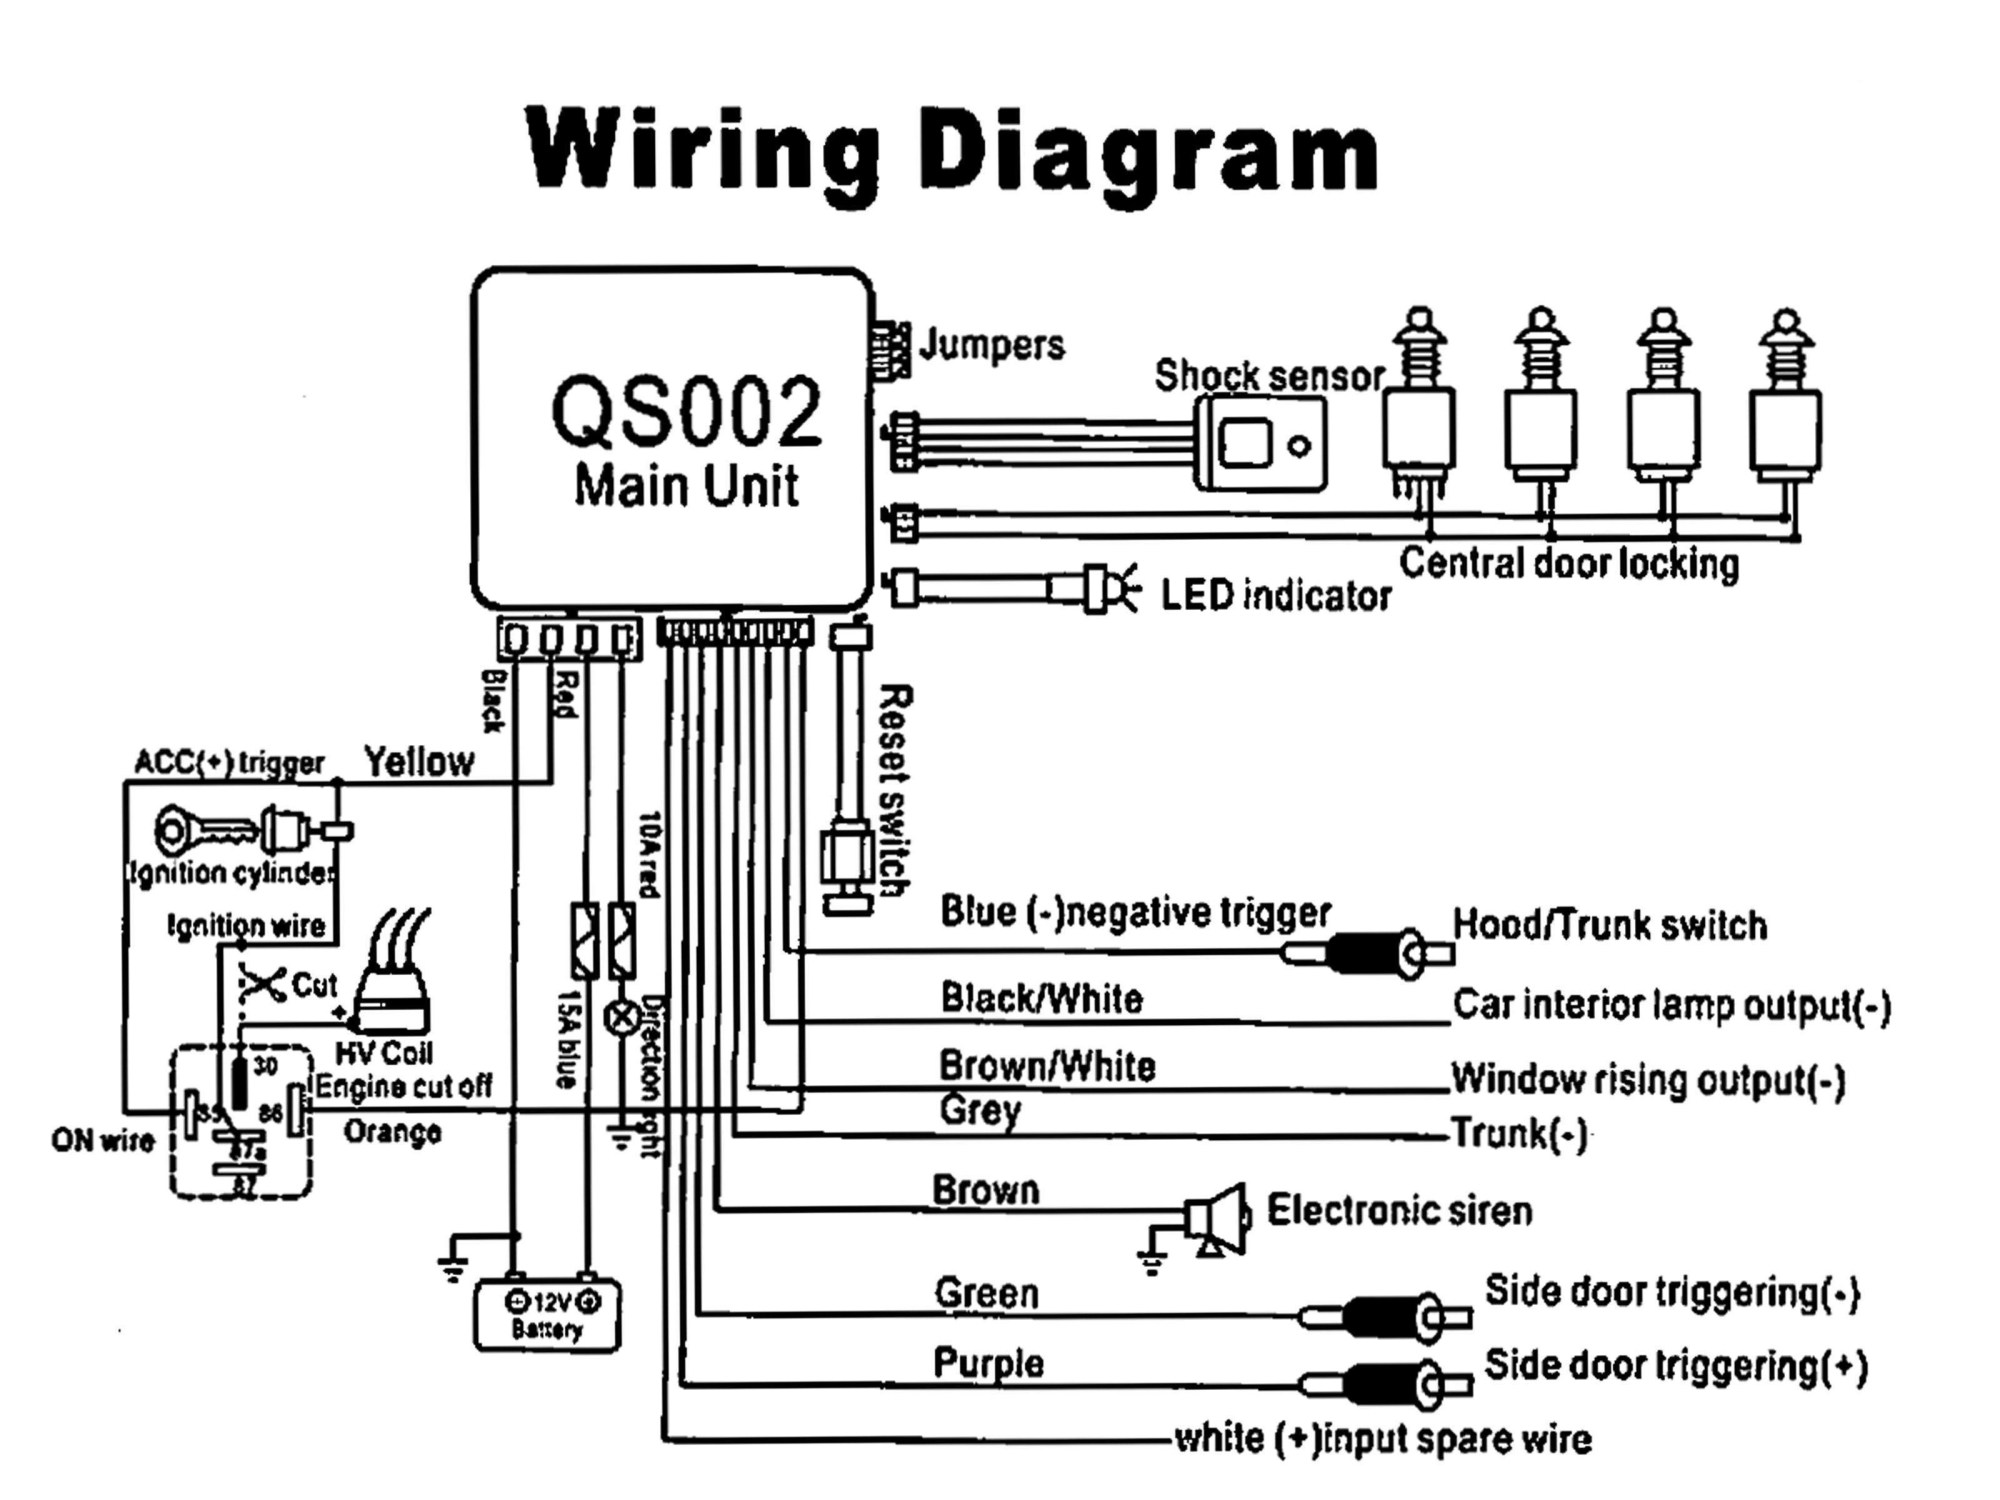 hight resolution of python wiring diagram wiring diagram for you python 1401 wiring diagram electrical wiring diagram python wiring